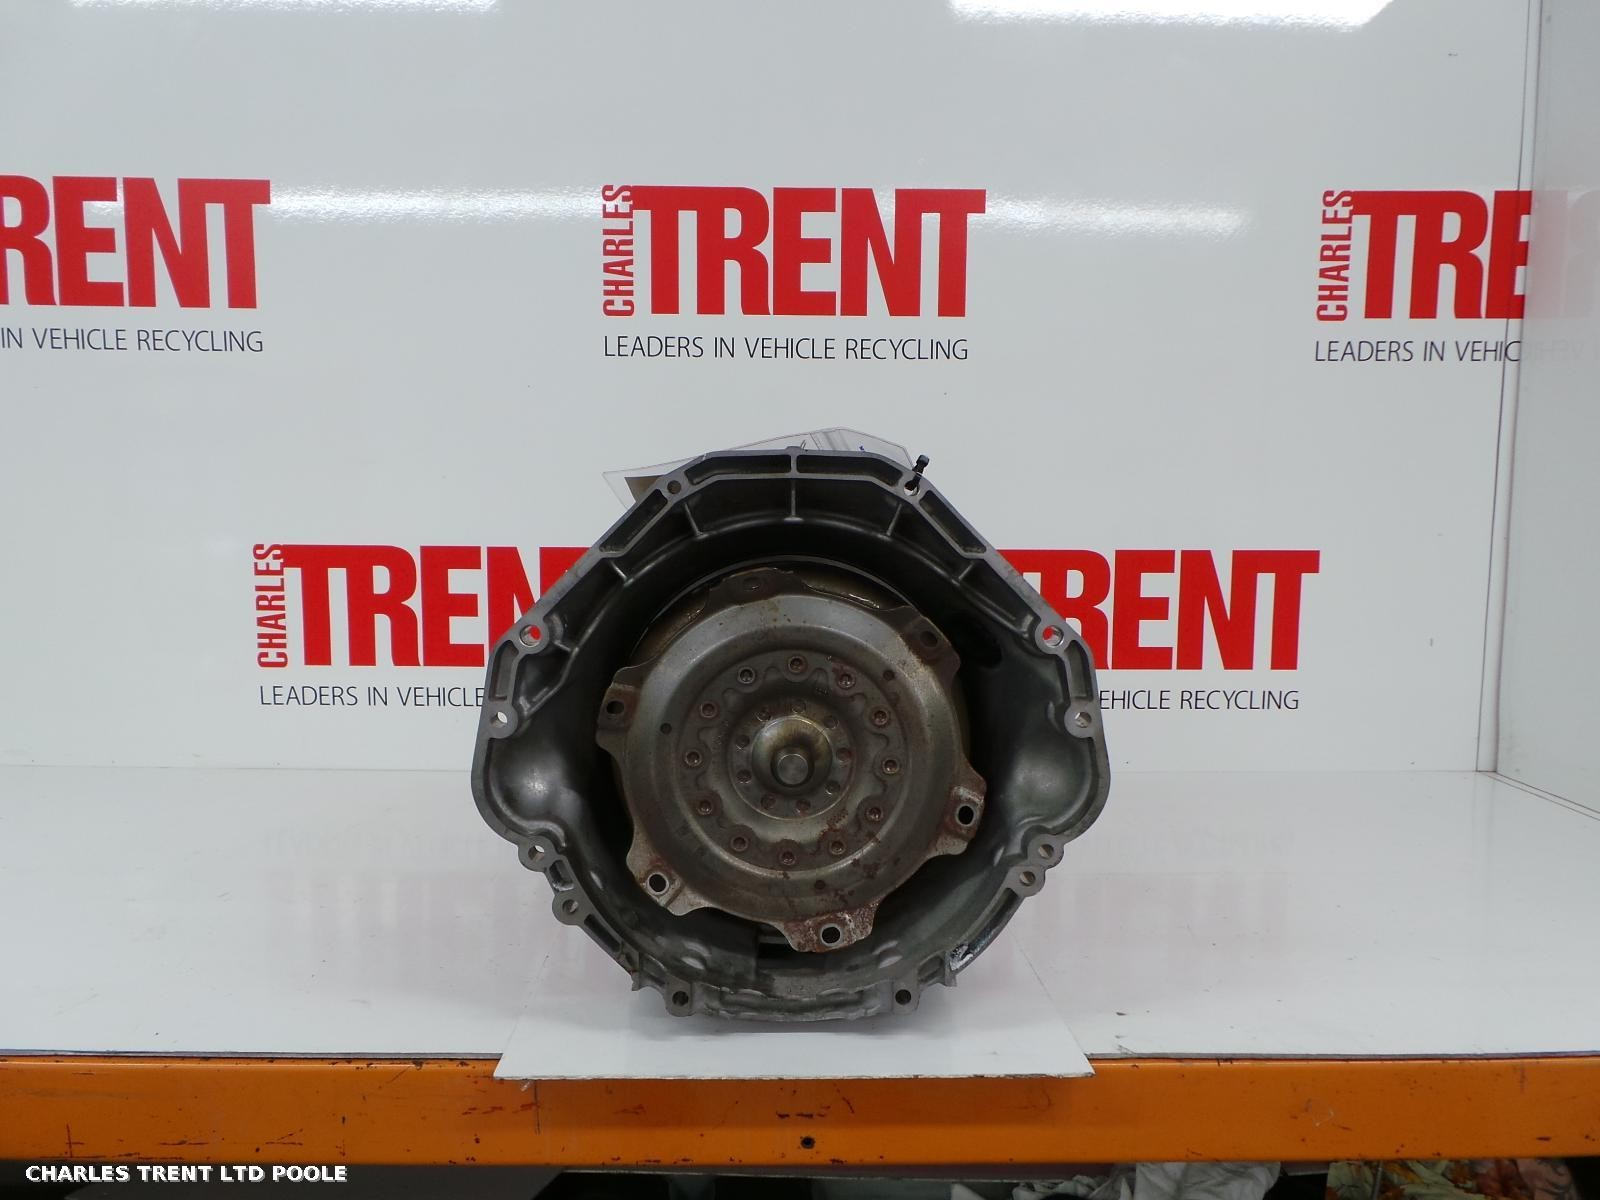 2013 - BMW - 6 SERIES - Gearboxes / Transmissions